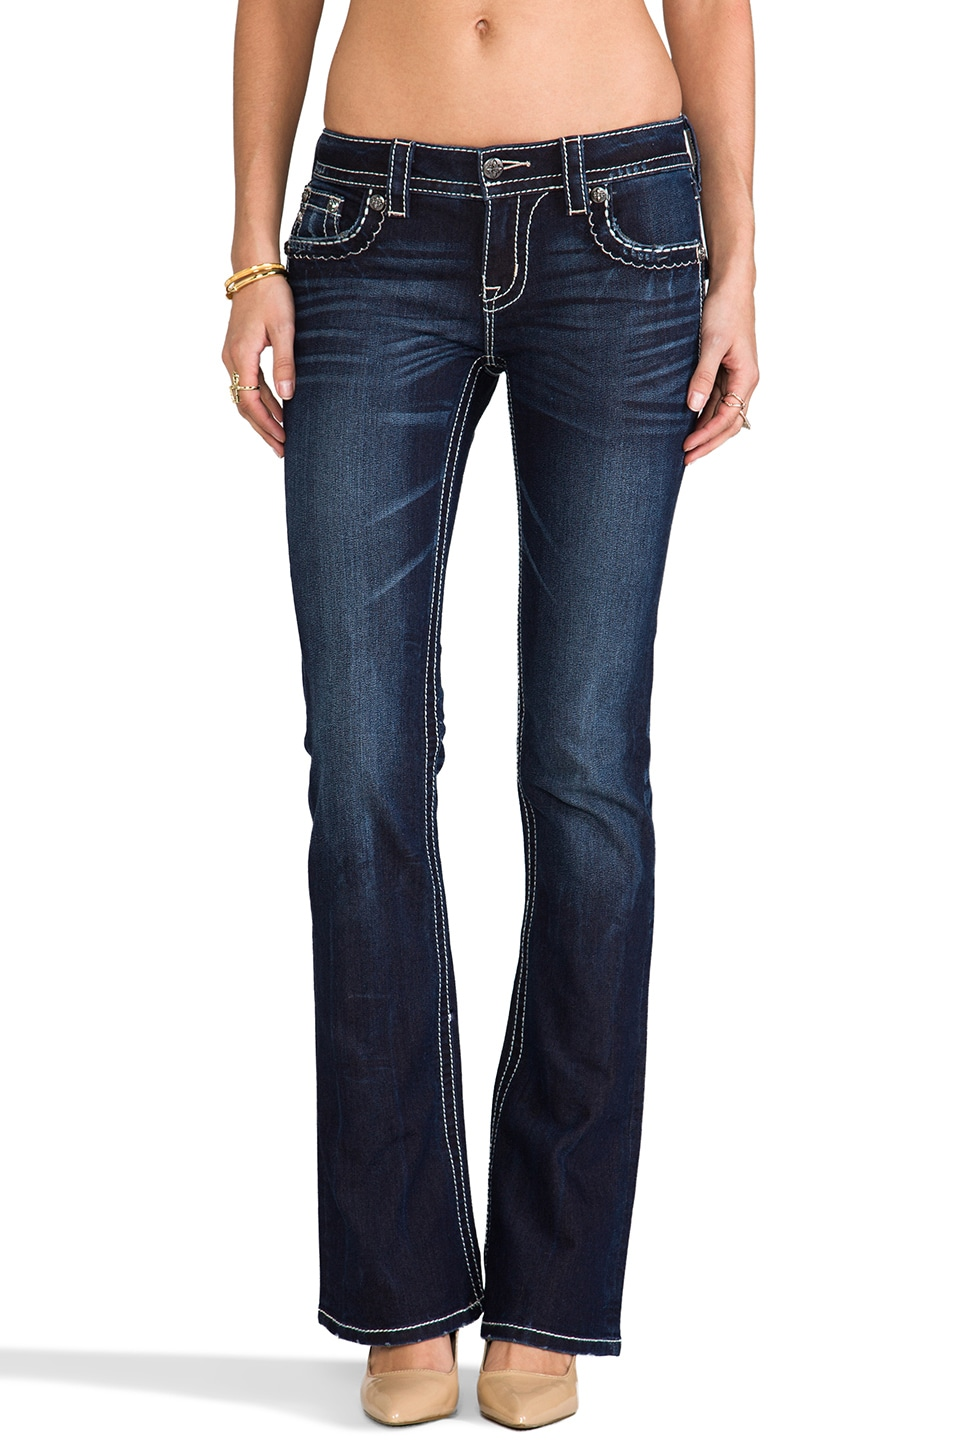 Miss Me Jeans Bootcut in DK 247